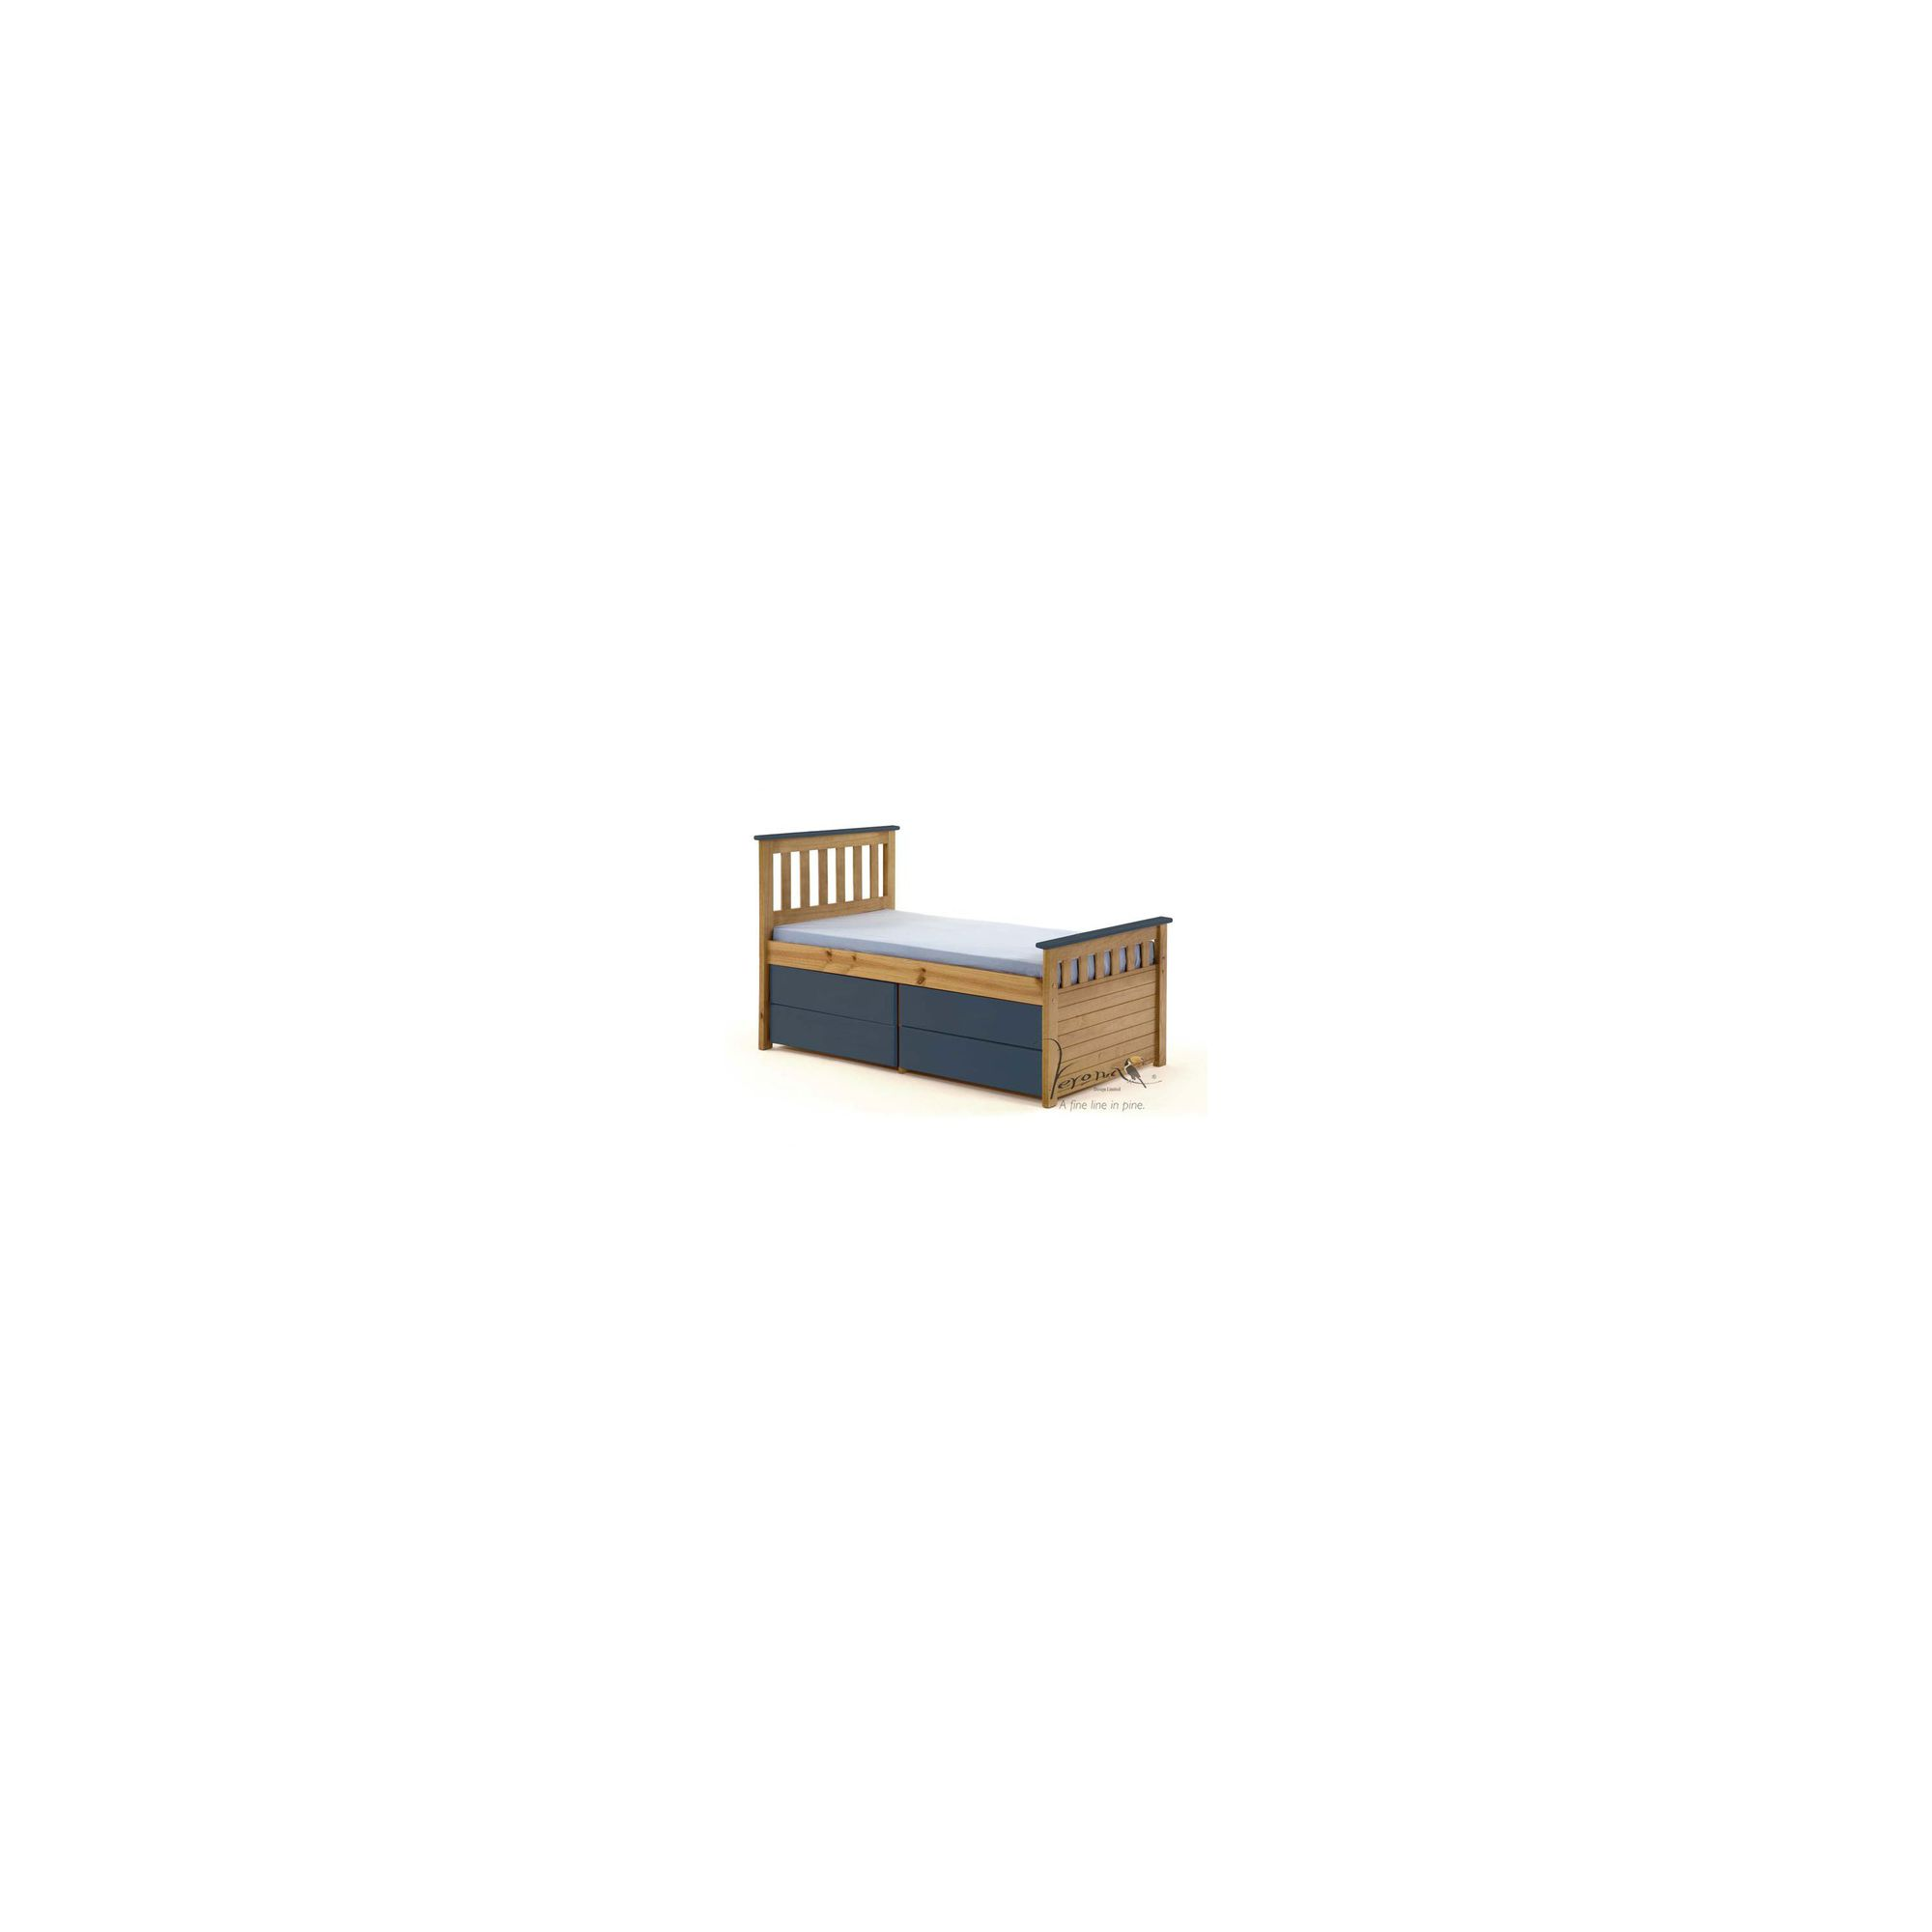 Verona Ferrara Kids Captains Bed with Underbed Storage - Antique Blue at Tesco Direct